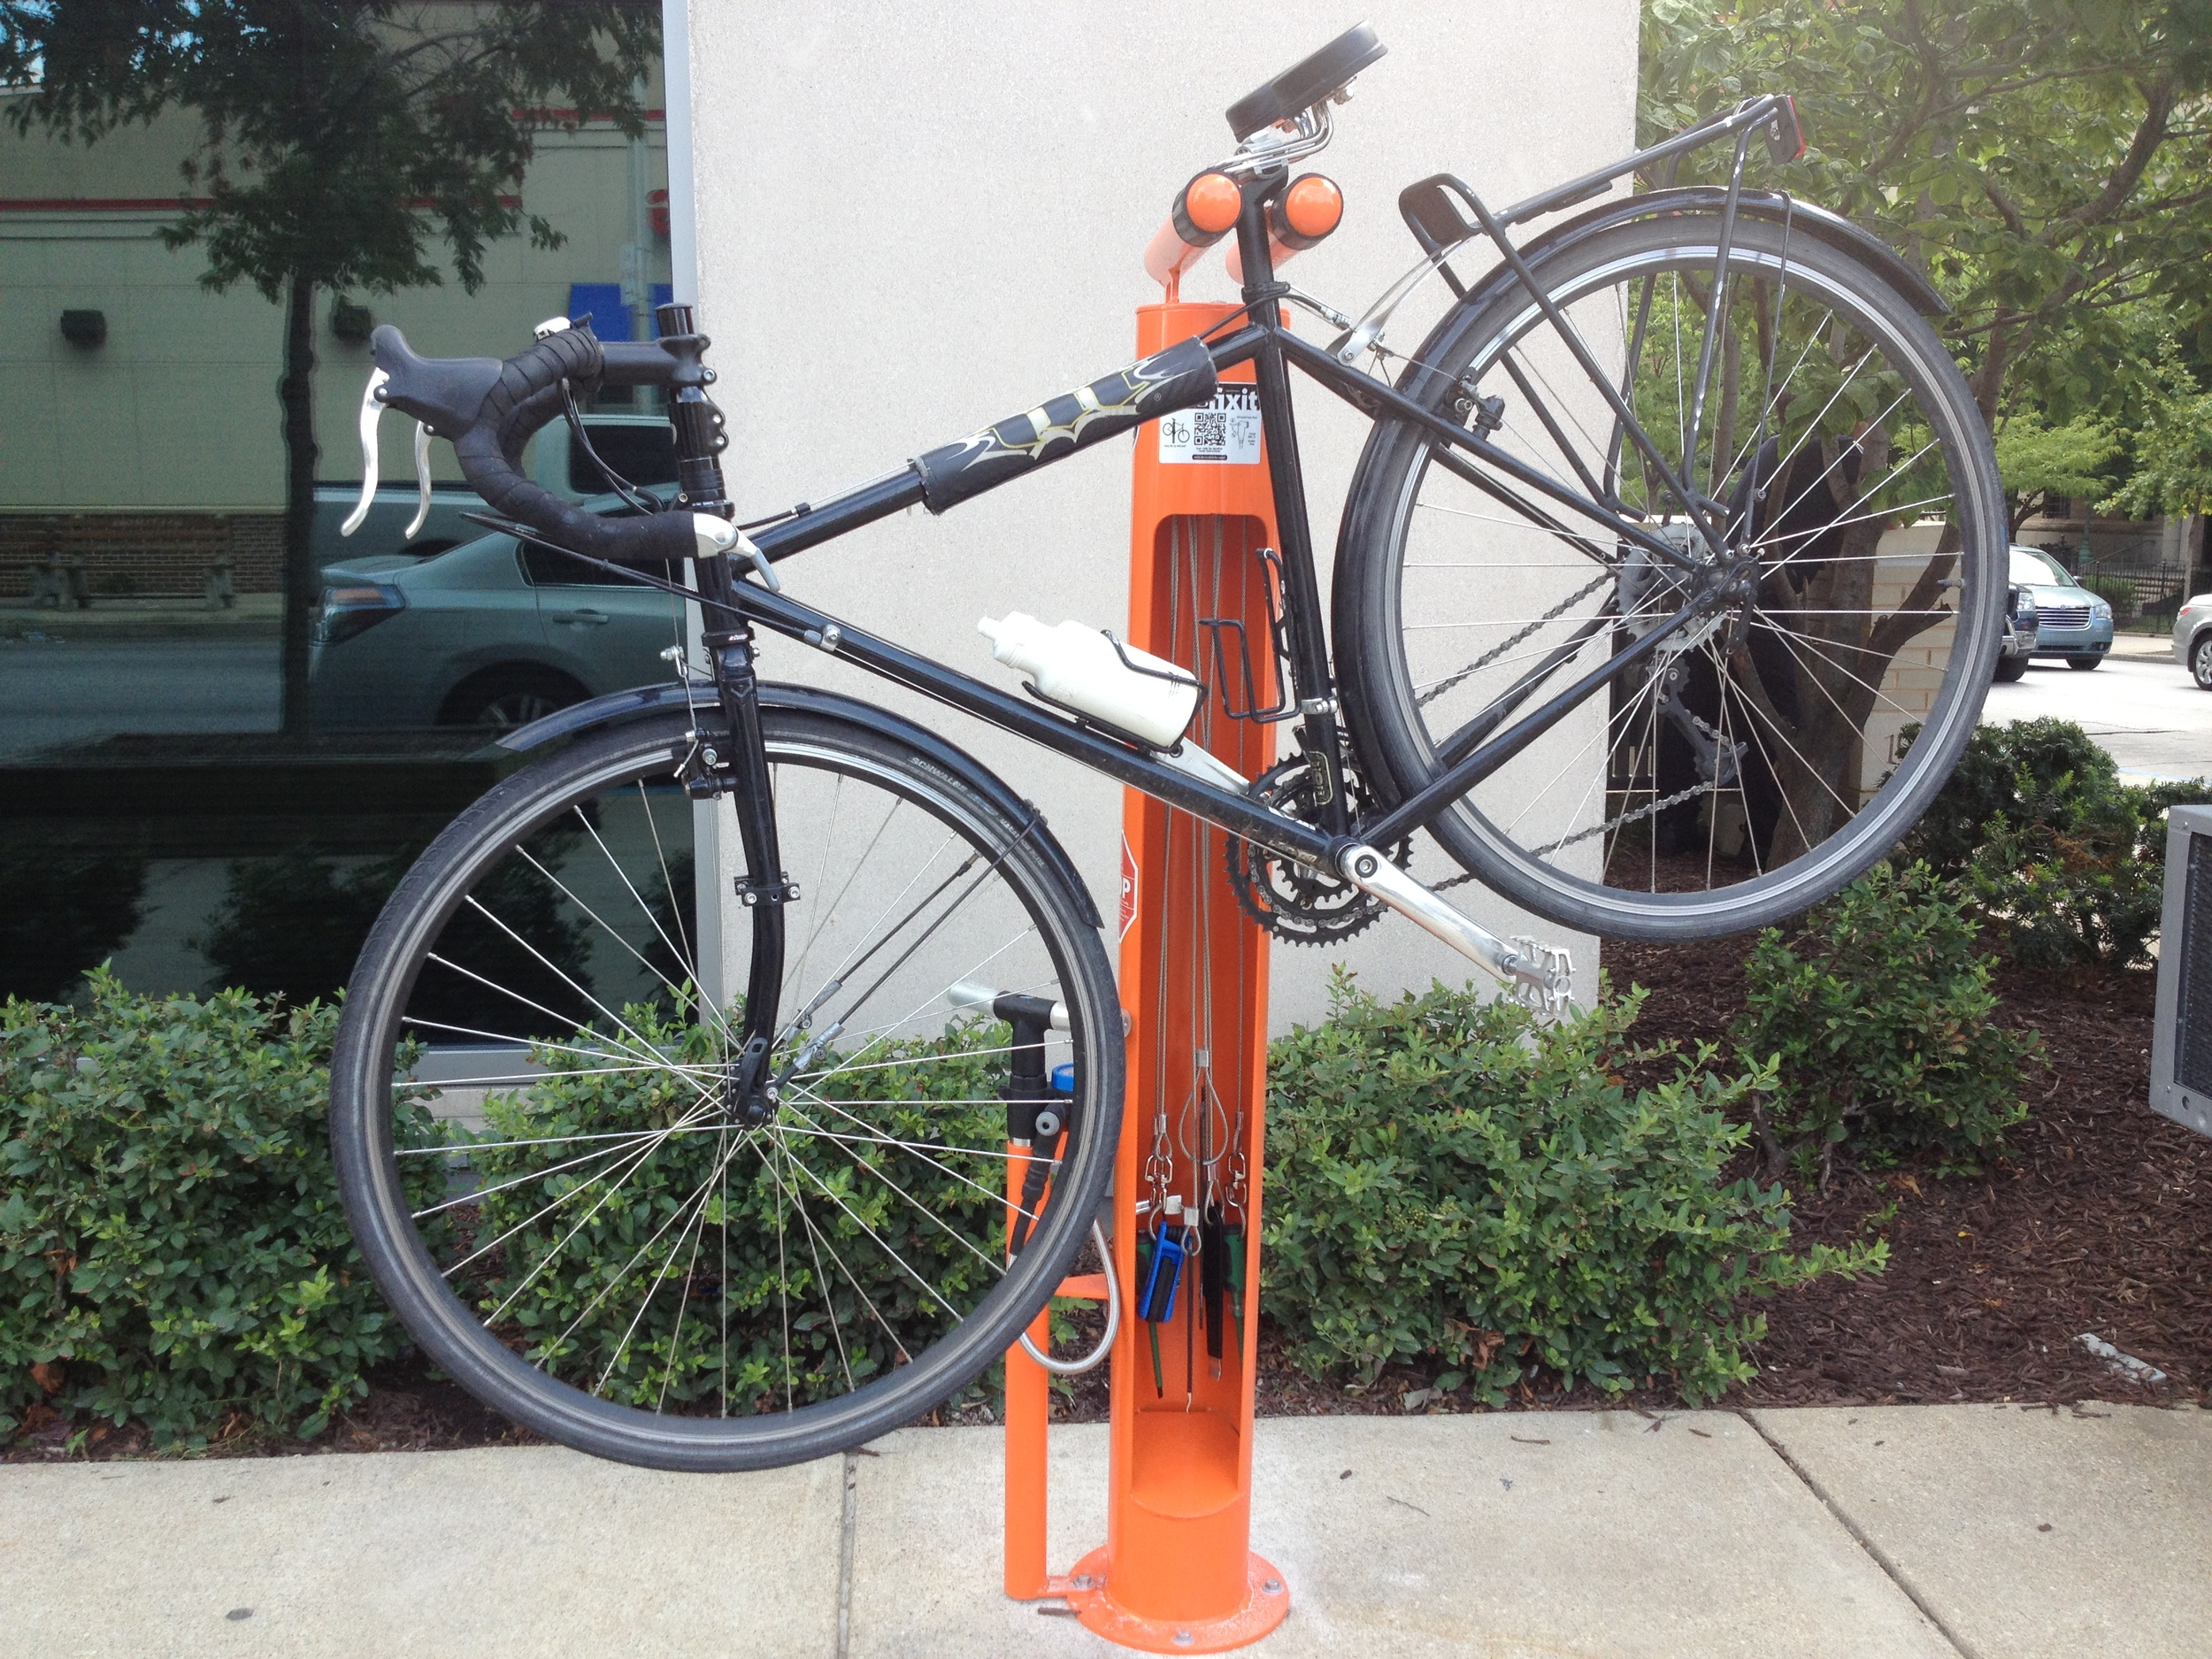 Johns Hopkins Bike Repair Stand